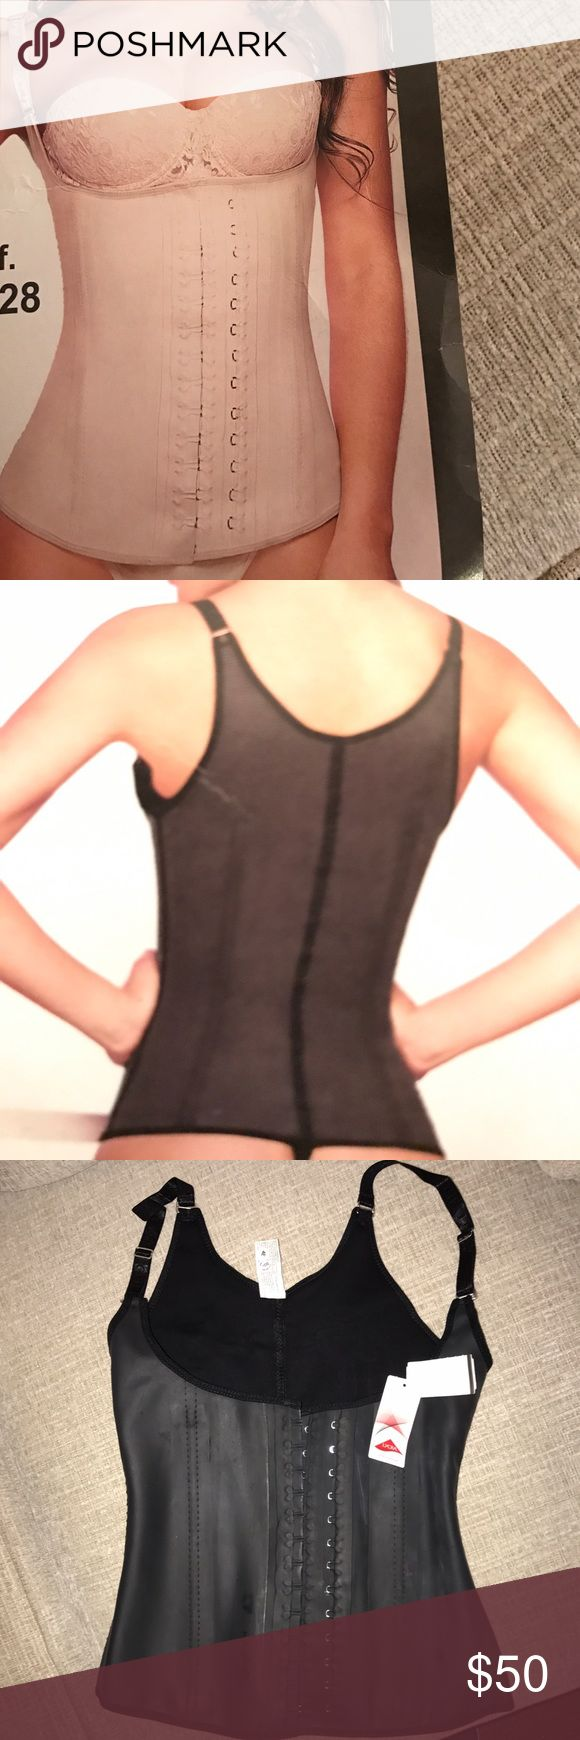 Adjustable vest waist trainer This is a black latex adjustable vest waist shaper. Very aggressive garment. Has full all around coverage and will help eliminate back bulge. Runs small. If in doubt go a size up. This garment will reduce your waist 1 -2 inches instantly and give you a hourglass figure. Black garment might have a powder film on it. This is just the nature of the latex material. Please send me a msg if your size doesn't appear on here.  😐No offers😉firm unless bundled or return…